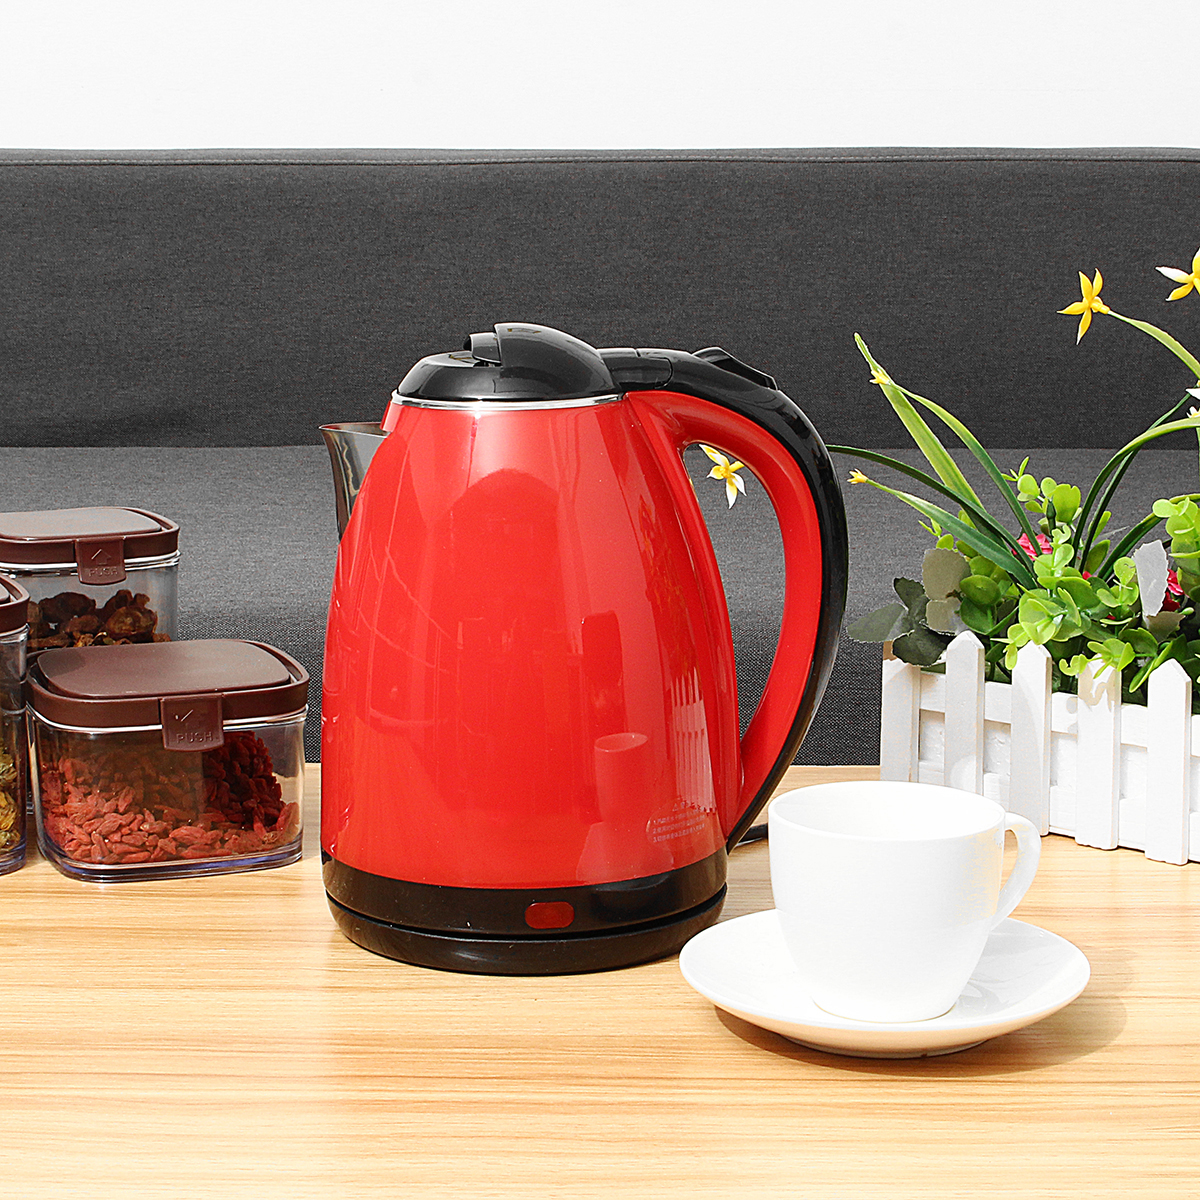 1500W 2L Stainless Steel Electric Kettle Automatic Power Off Hot Water Coffee Tea Pot